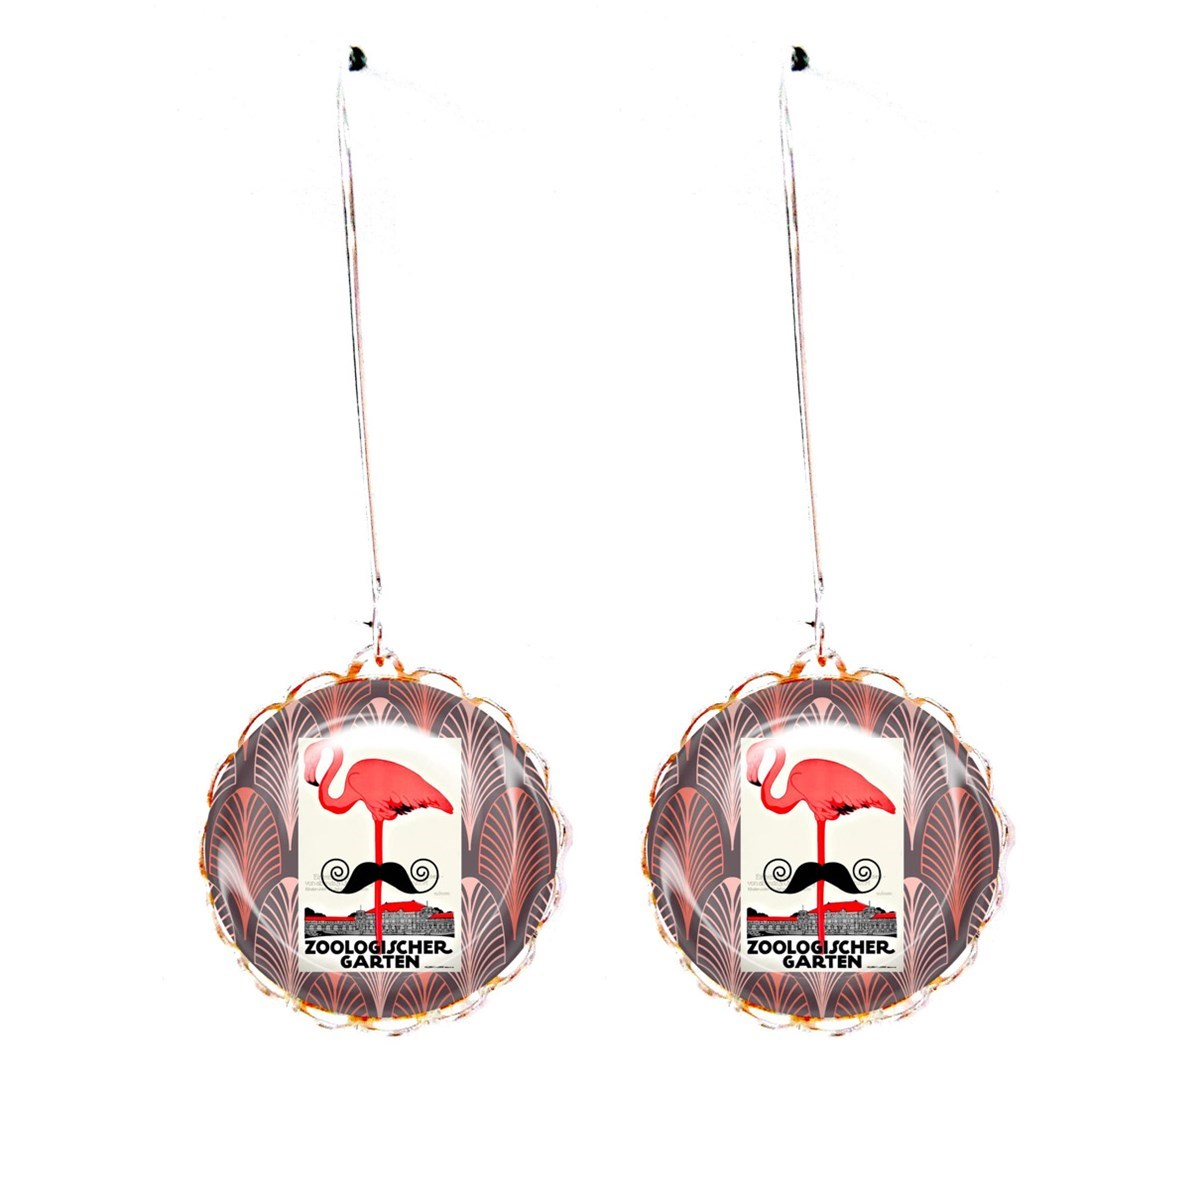 Boucles cabochons flamand rose moustache art déco - vue V1